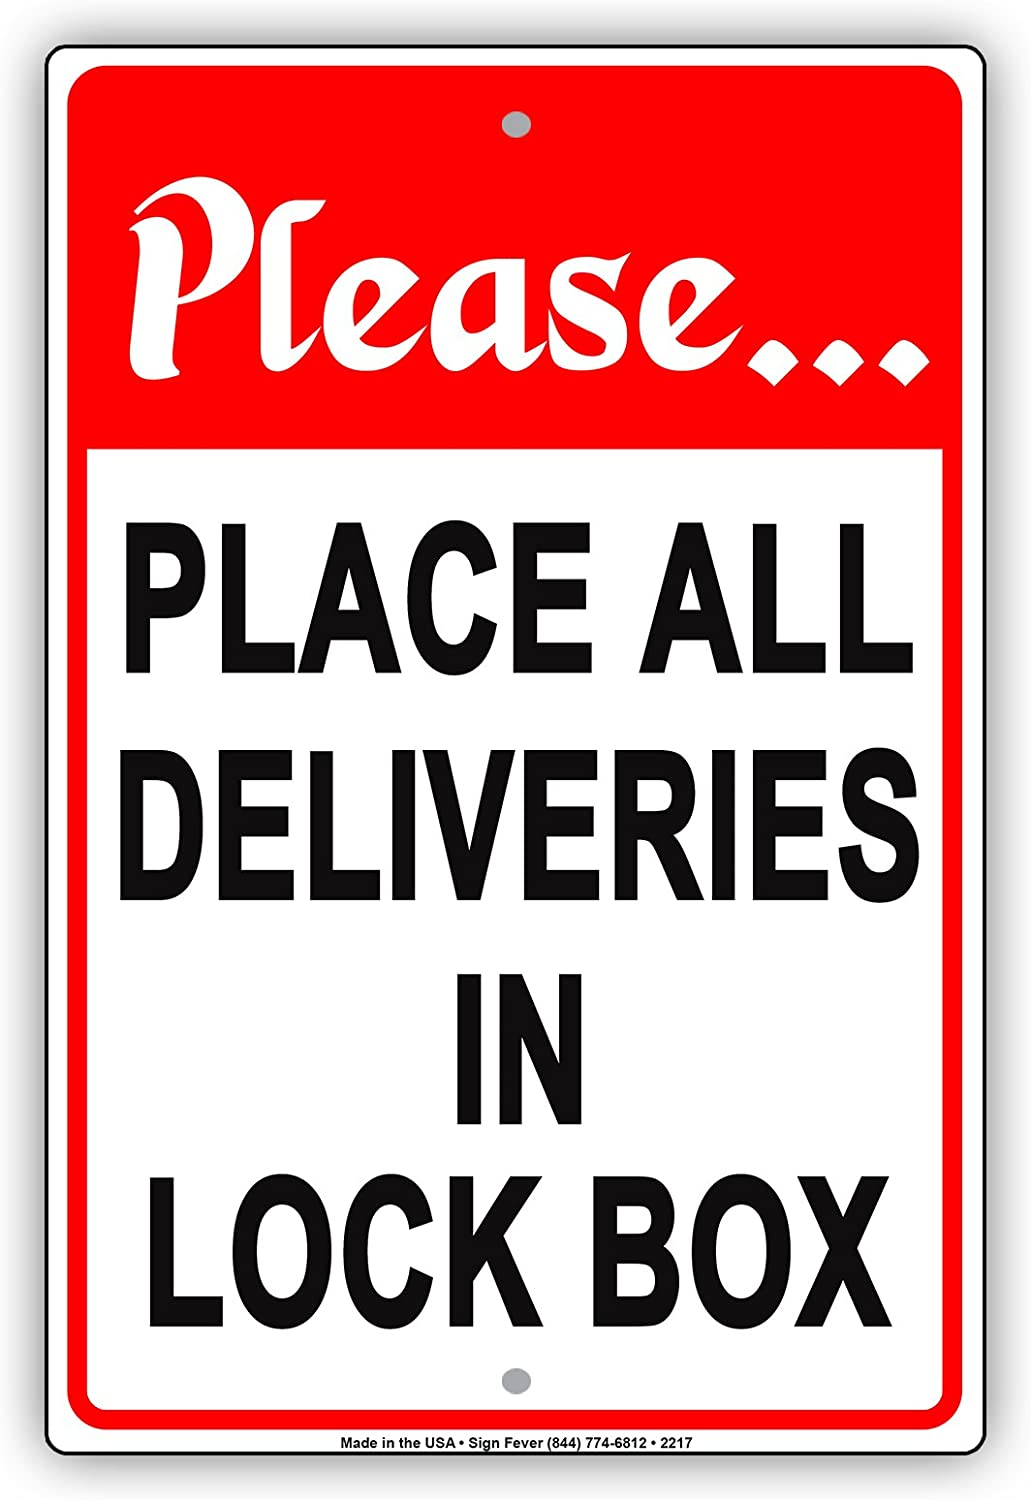 Please Place All Deliveries in Lock Box Receiving Drop Off Area Alert Caution Warning Notice Aluminum Metal Tin 8x12 Sign Plate